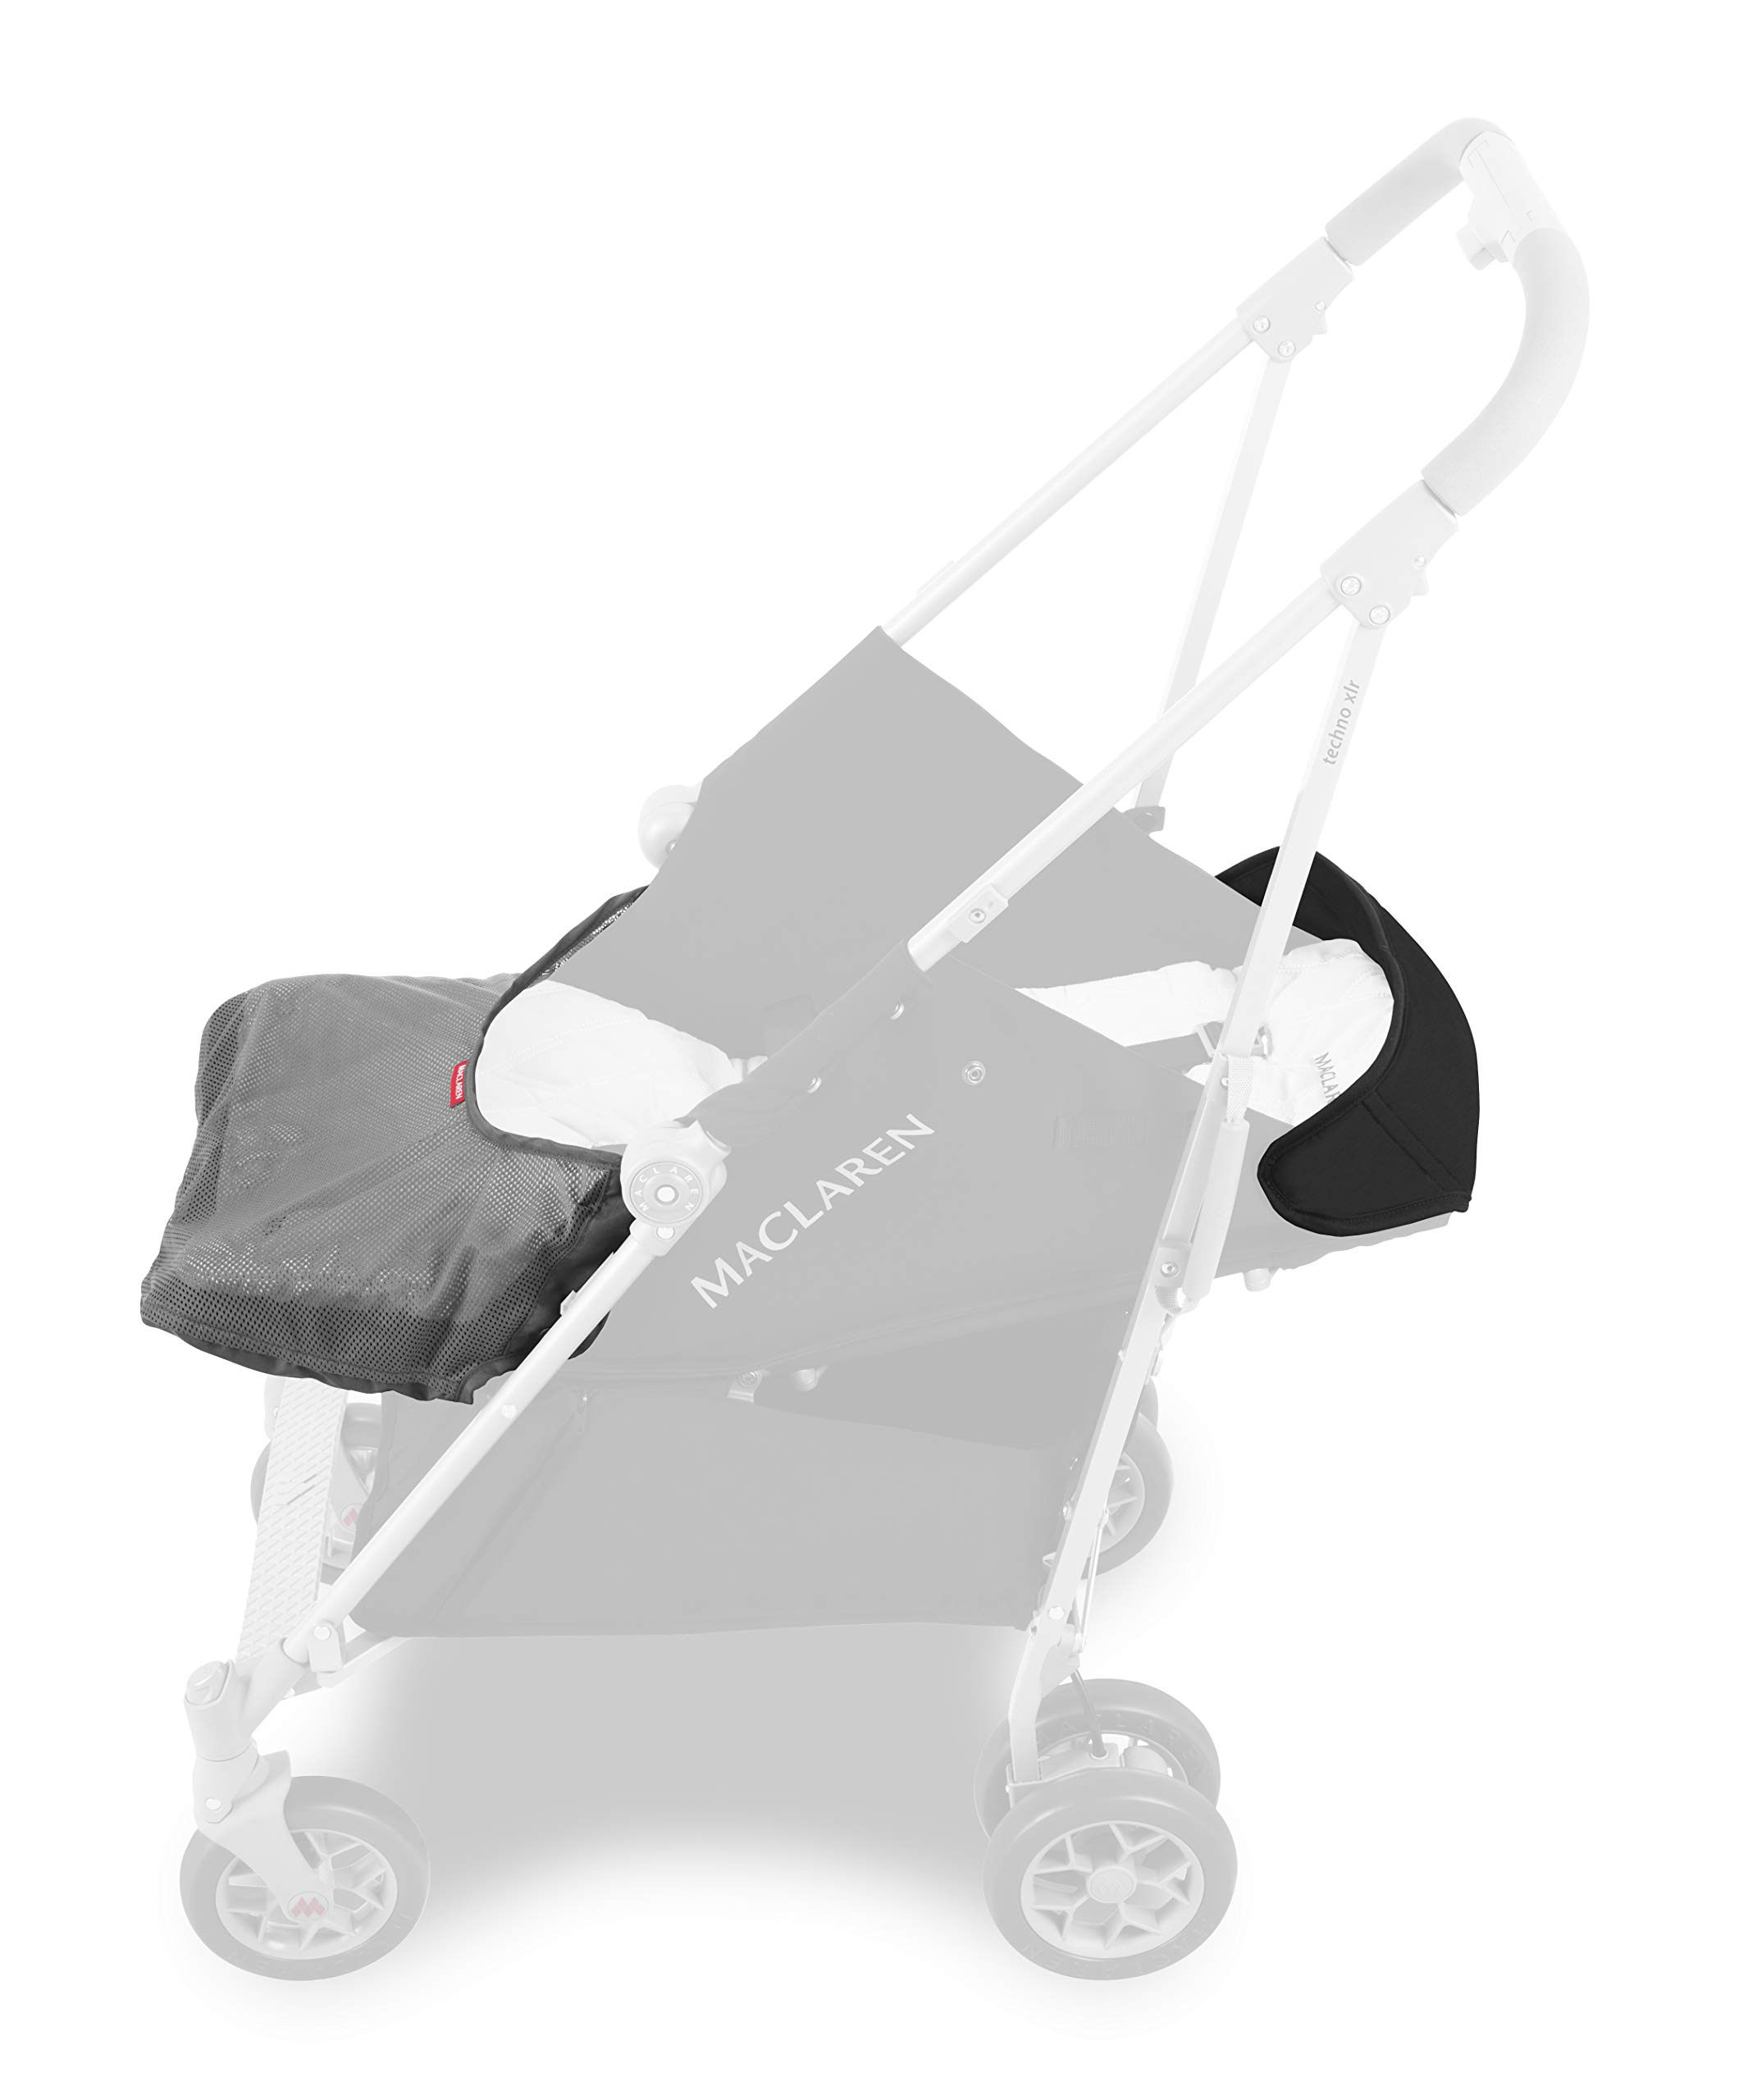 Maclaren Quest Arc Stroller- Ideal for Newborns up to 25kg with extendable UPF 50+/Waterproof Hood, Multi-Position seat and 4-Wheel Suspension. Maclaren Carrycot Compatible. Accessories in The Box Maclaren Lightweight and compact. ideal for newborns and children up to 25kg. you can do it all with one-hand- open, close, push and adjust the seat, footrest and front safety lock Comfy and perfect for travel. the quest arc's padded seat reclines into 4 positions and converts into a new-born safety system. coupled with ultra light flat-free eva tires and all wheel suspension Smart product for active parents. compatible with the maclaren carrycot. all maclaren strollers have waterproof/ upf 50+ hoods to protect from the elements and machine washable seats to keep tidy 13